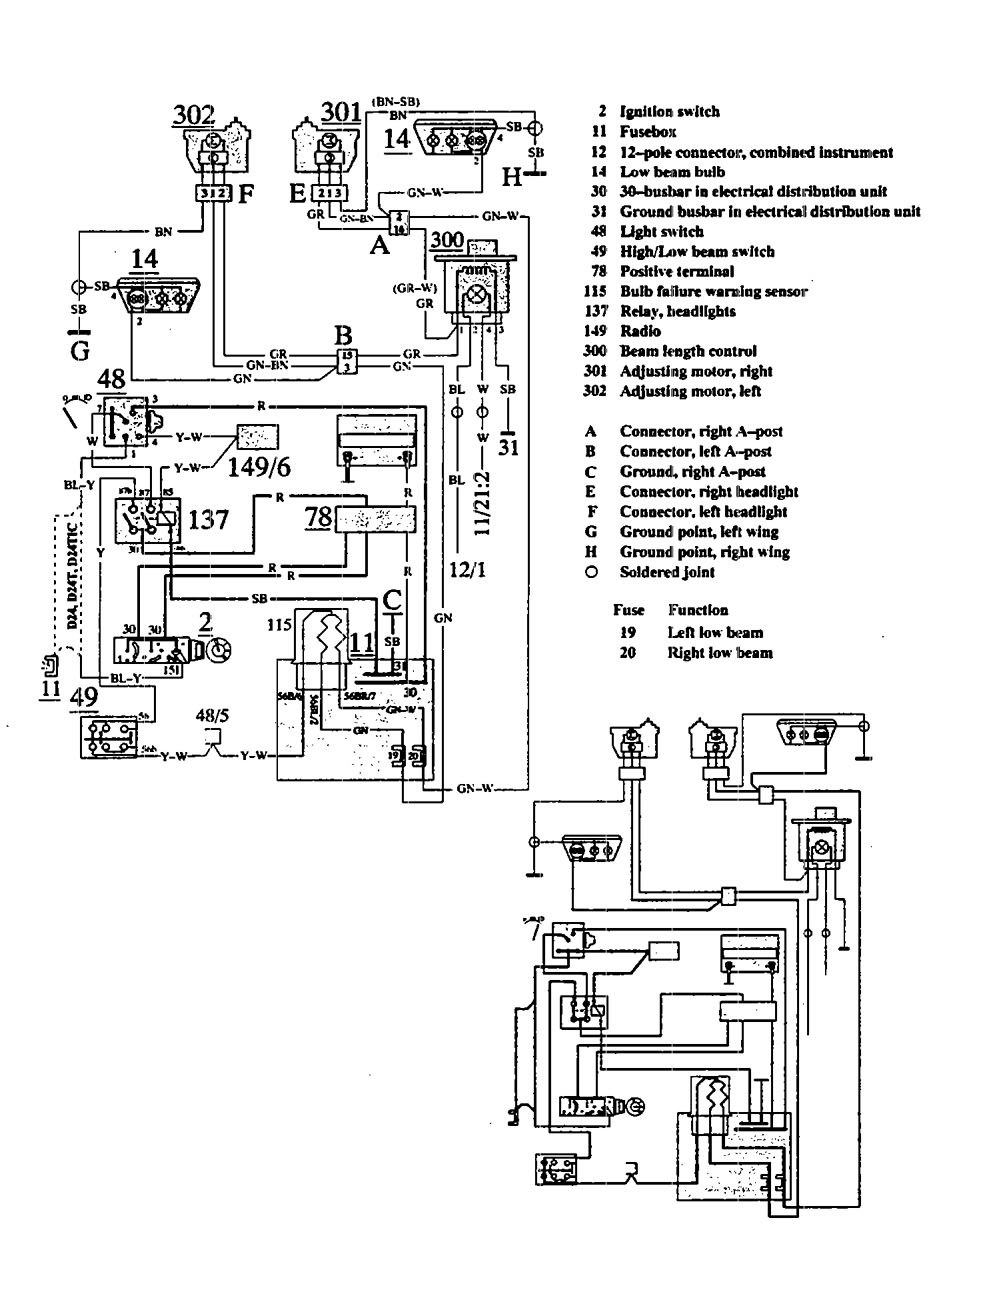 Volvo 940 Wiring Diagram from www.carknowledge.info